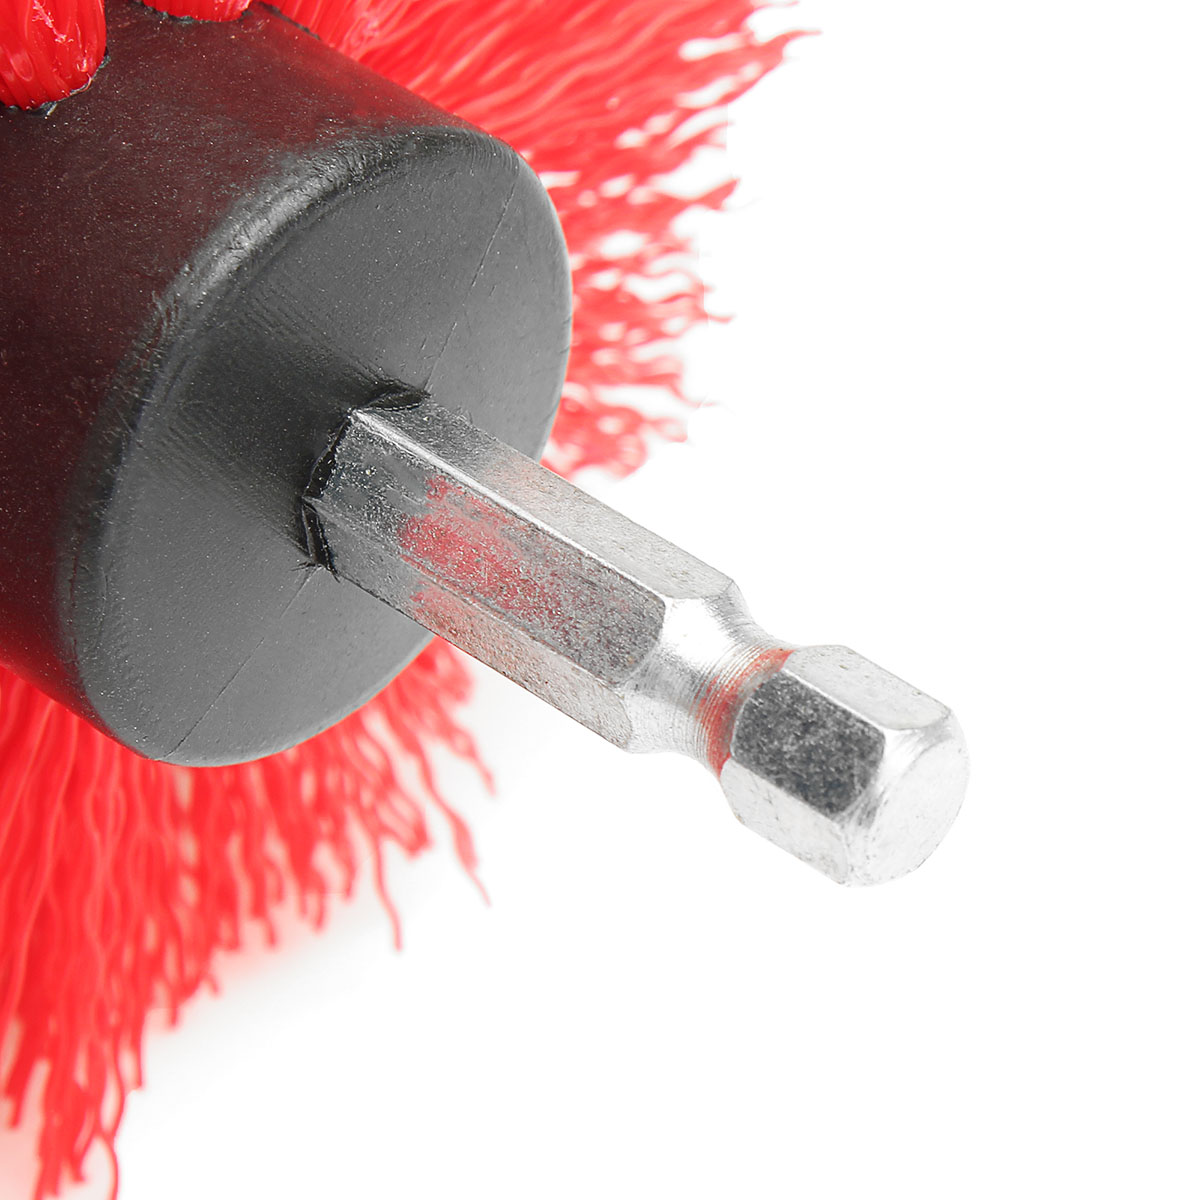 3.5 Inch Drill Cleaning Ball Brush Power Scrubber Bathroom Tub Tile Cleaning Tool